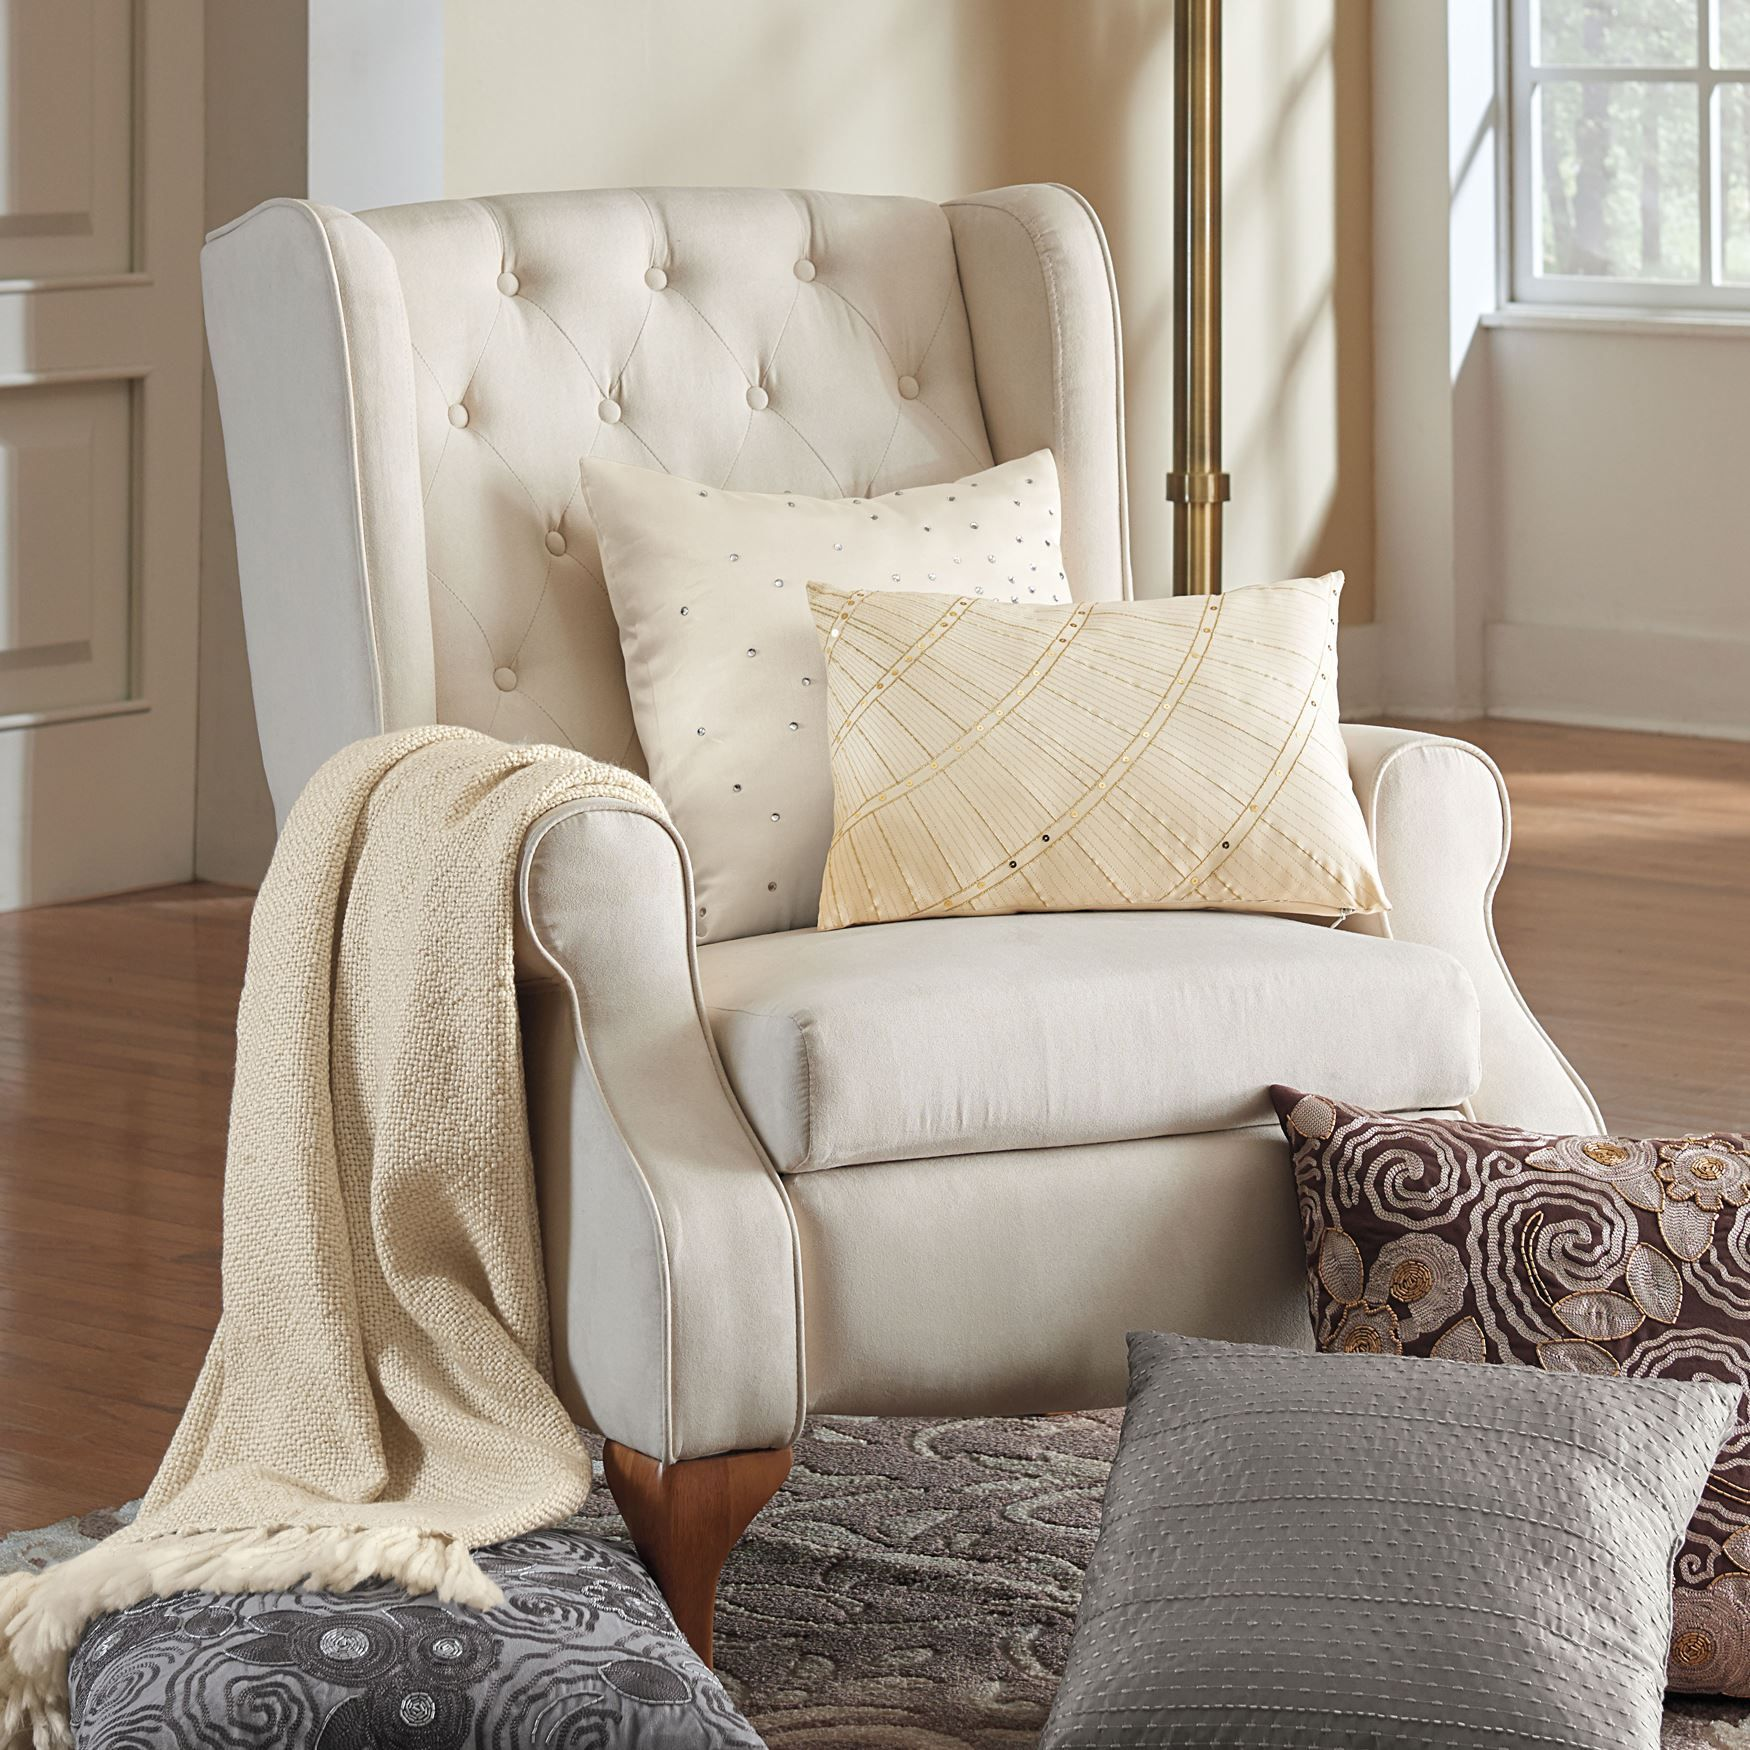 Sofa Queen Anne Style Queen Anne Style Tufted Wingback Recliner Plus Size Plus